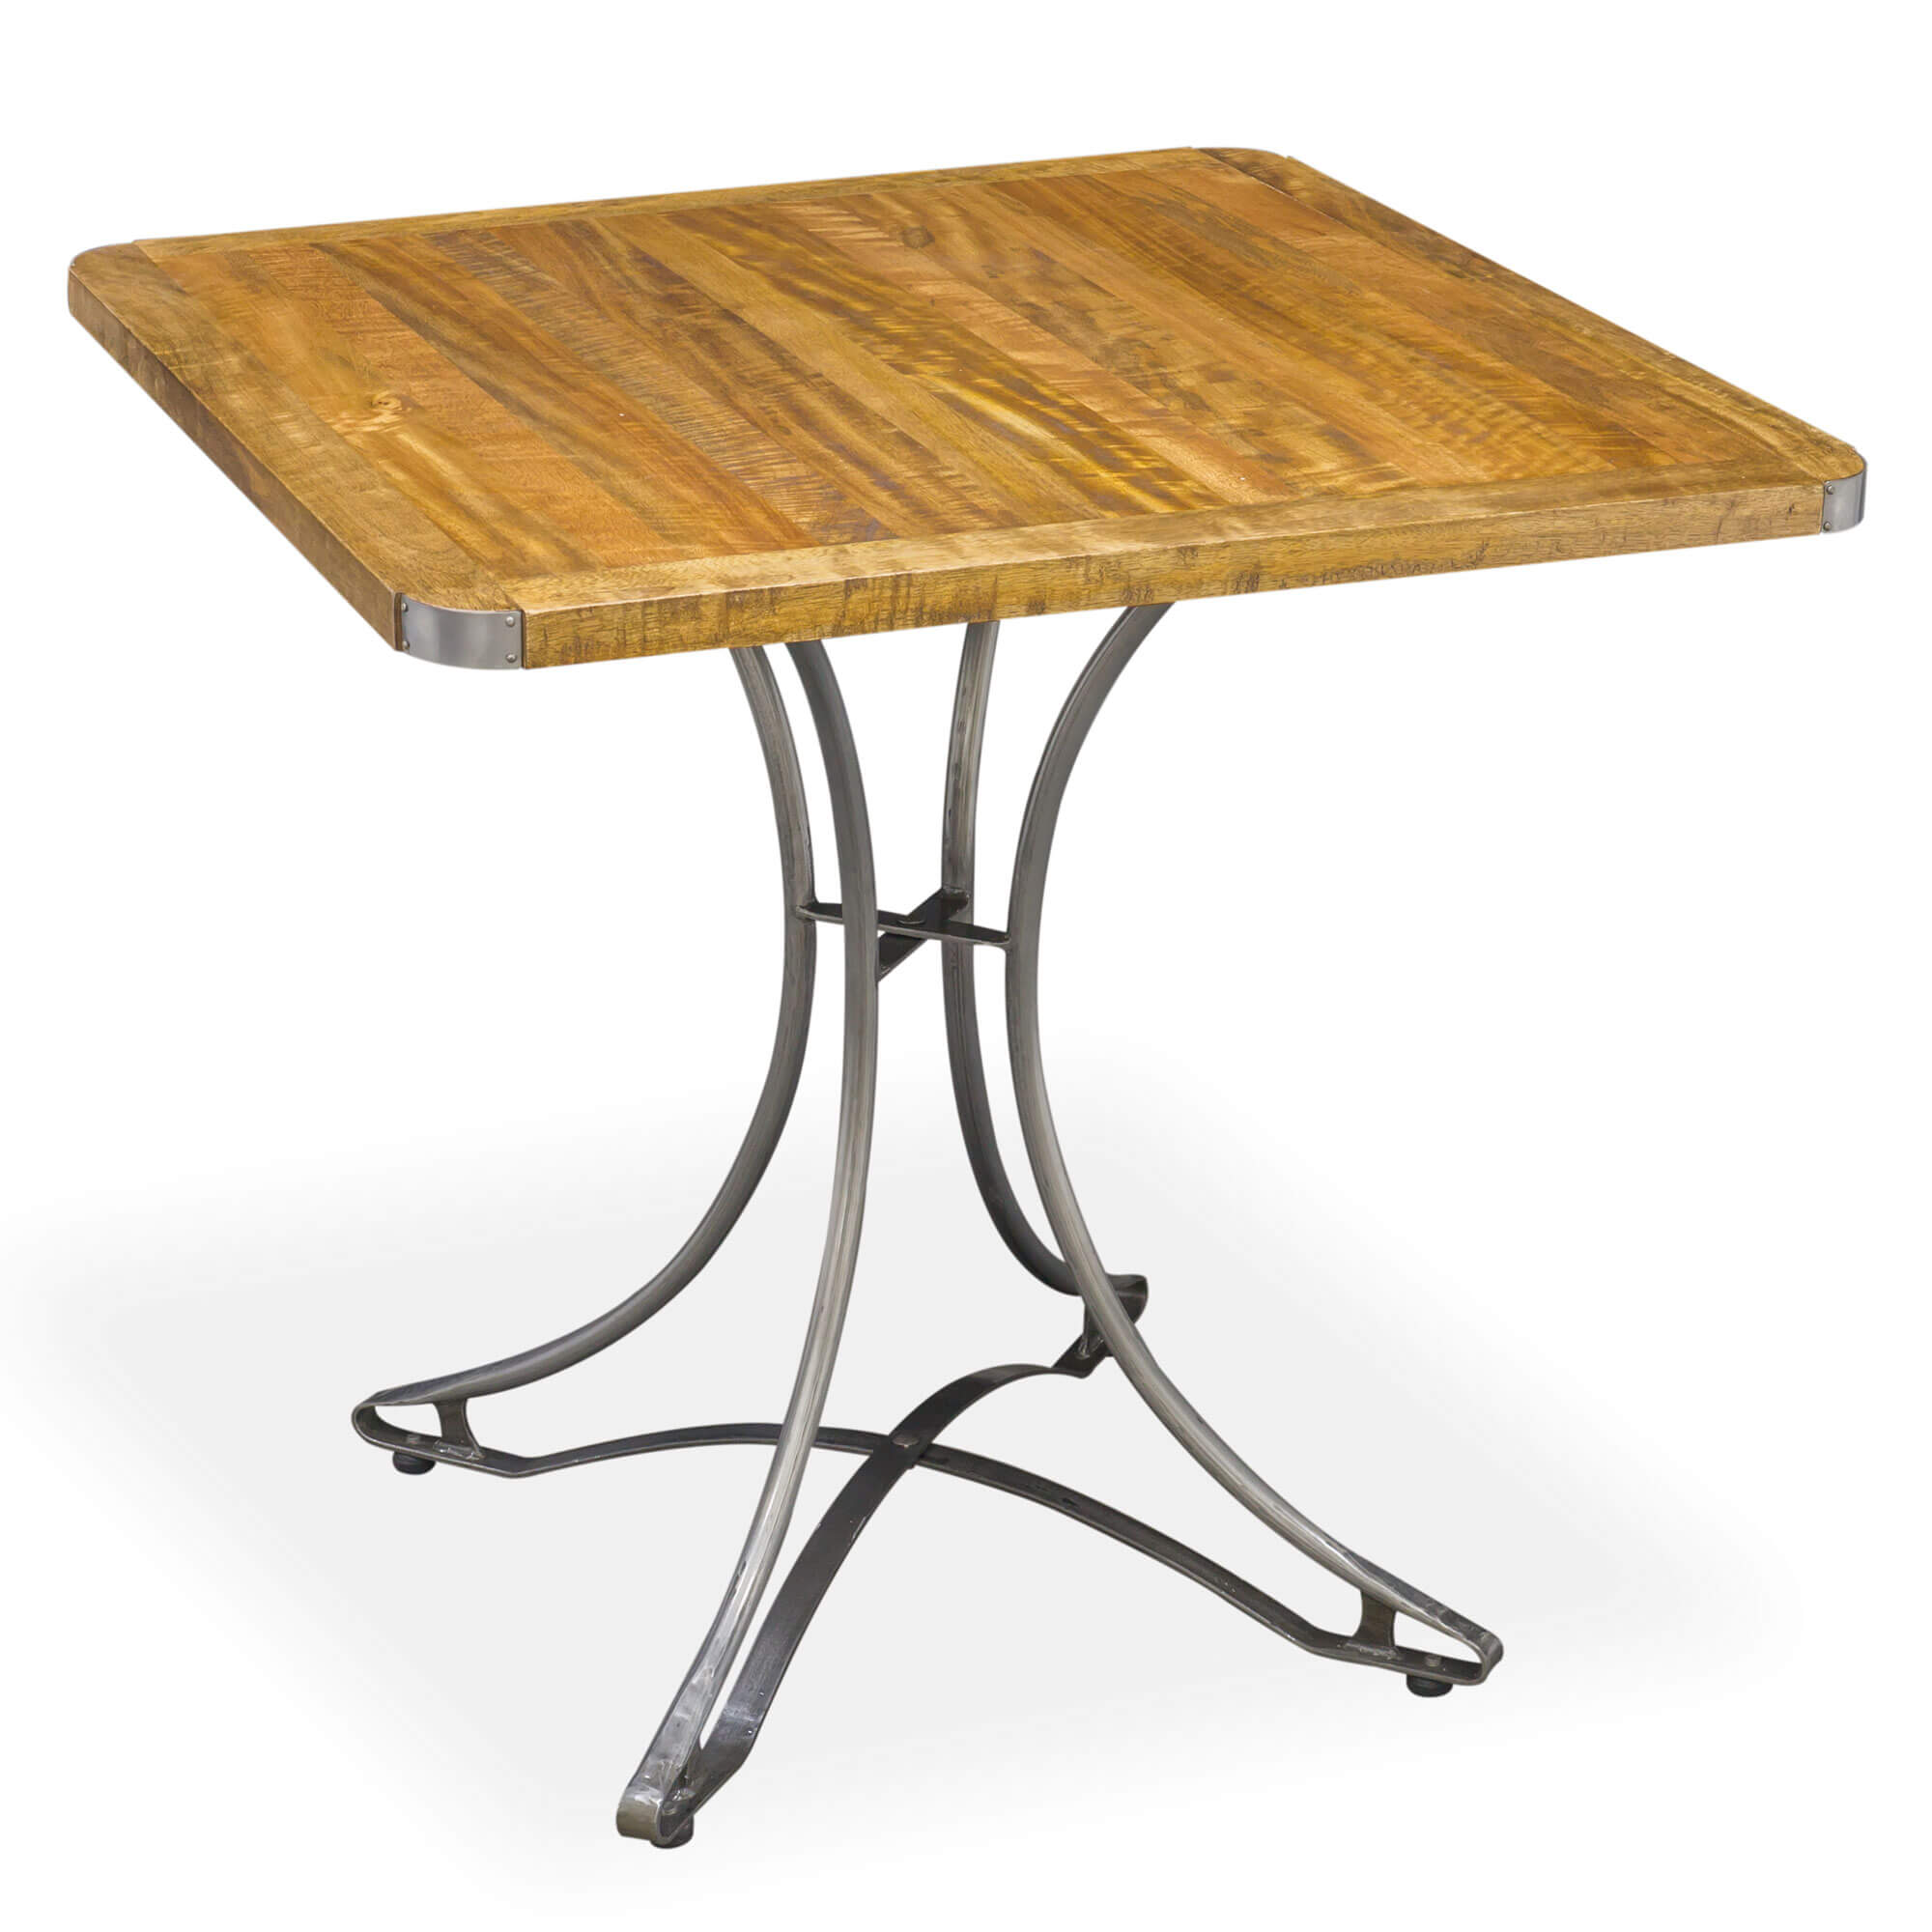 Urban Square Cafe Table x4 Chairs (80x80) | Solid Wood |